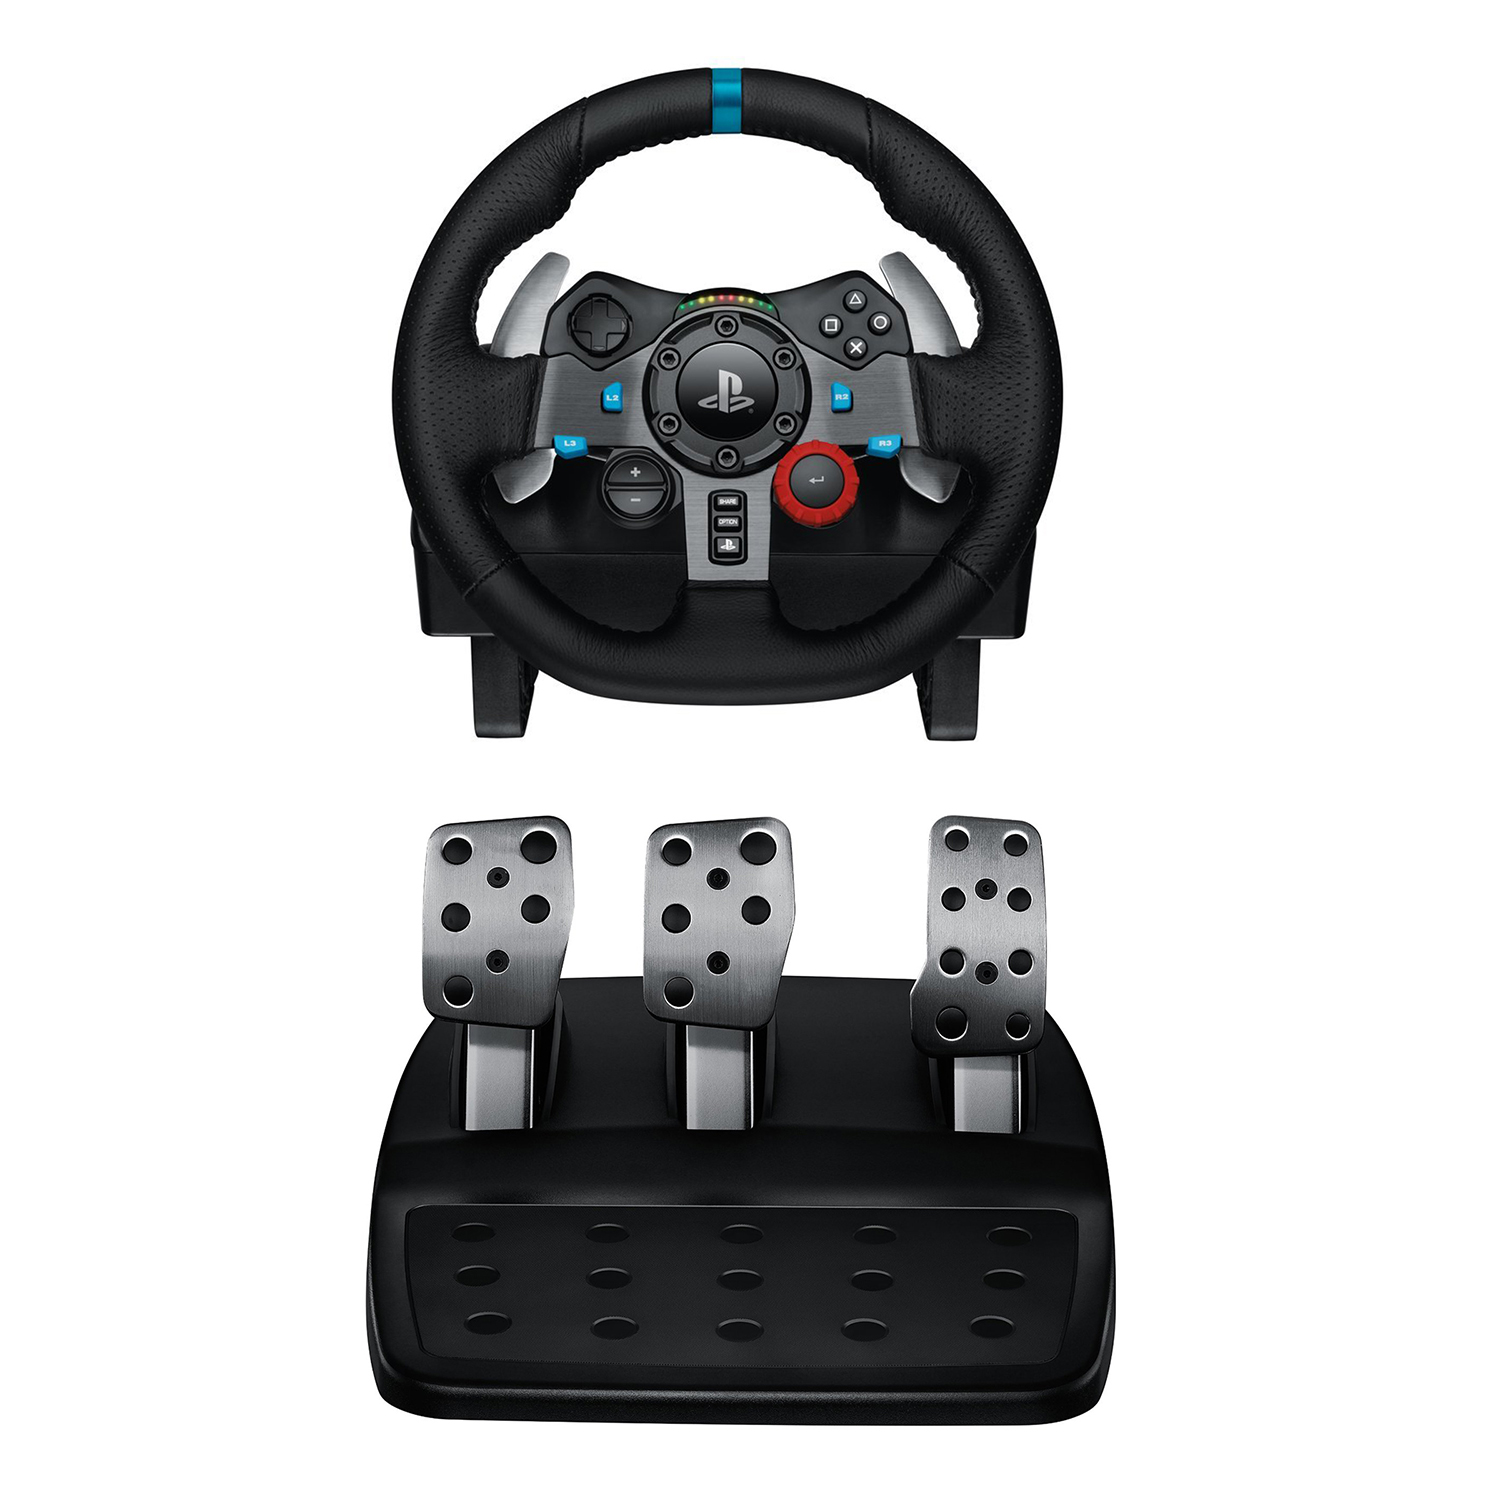 Details about Logitech G29 Driving Force Racing Wheel Dual Motor Force  Feedback for PS3 & PS4